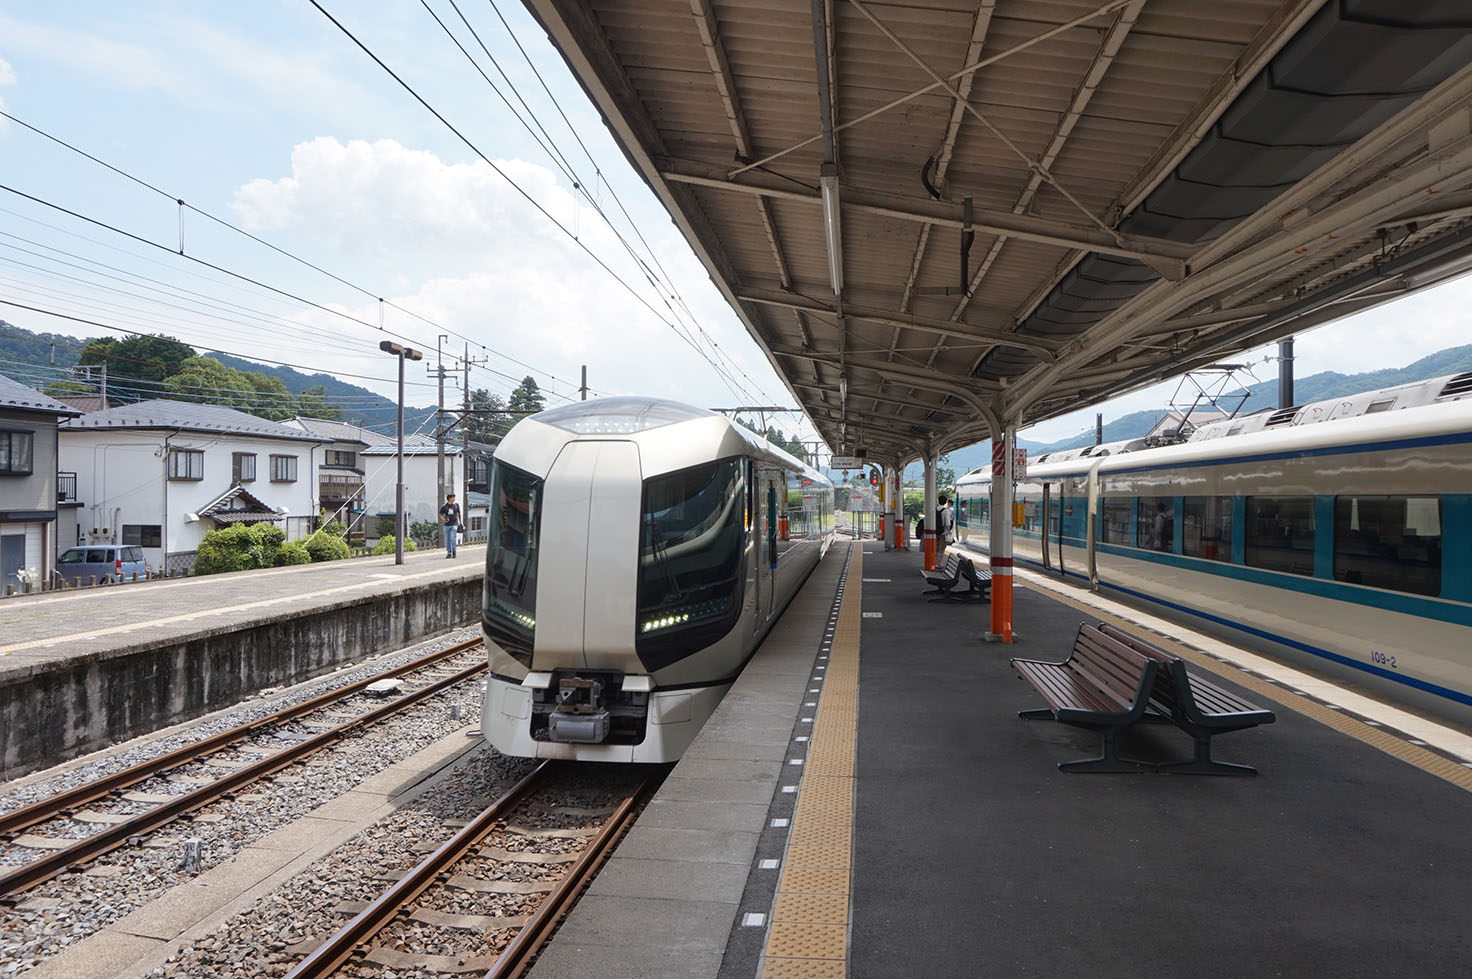 How to get to Nikko from Tokyo